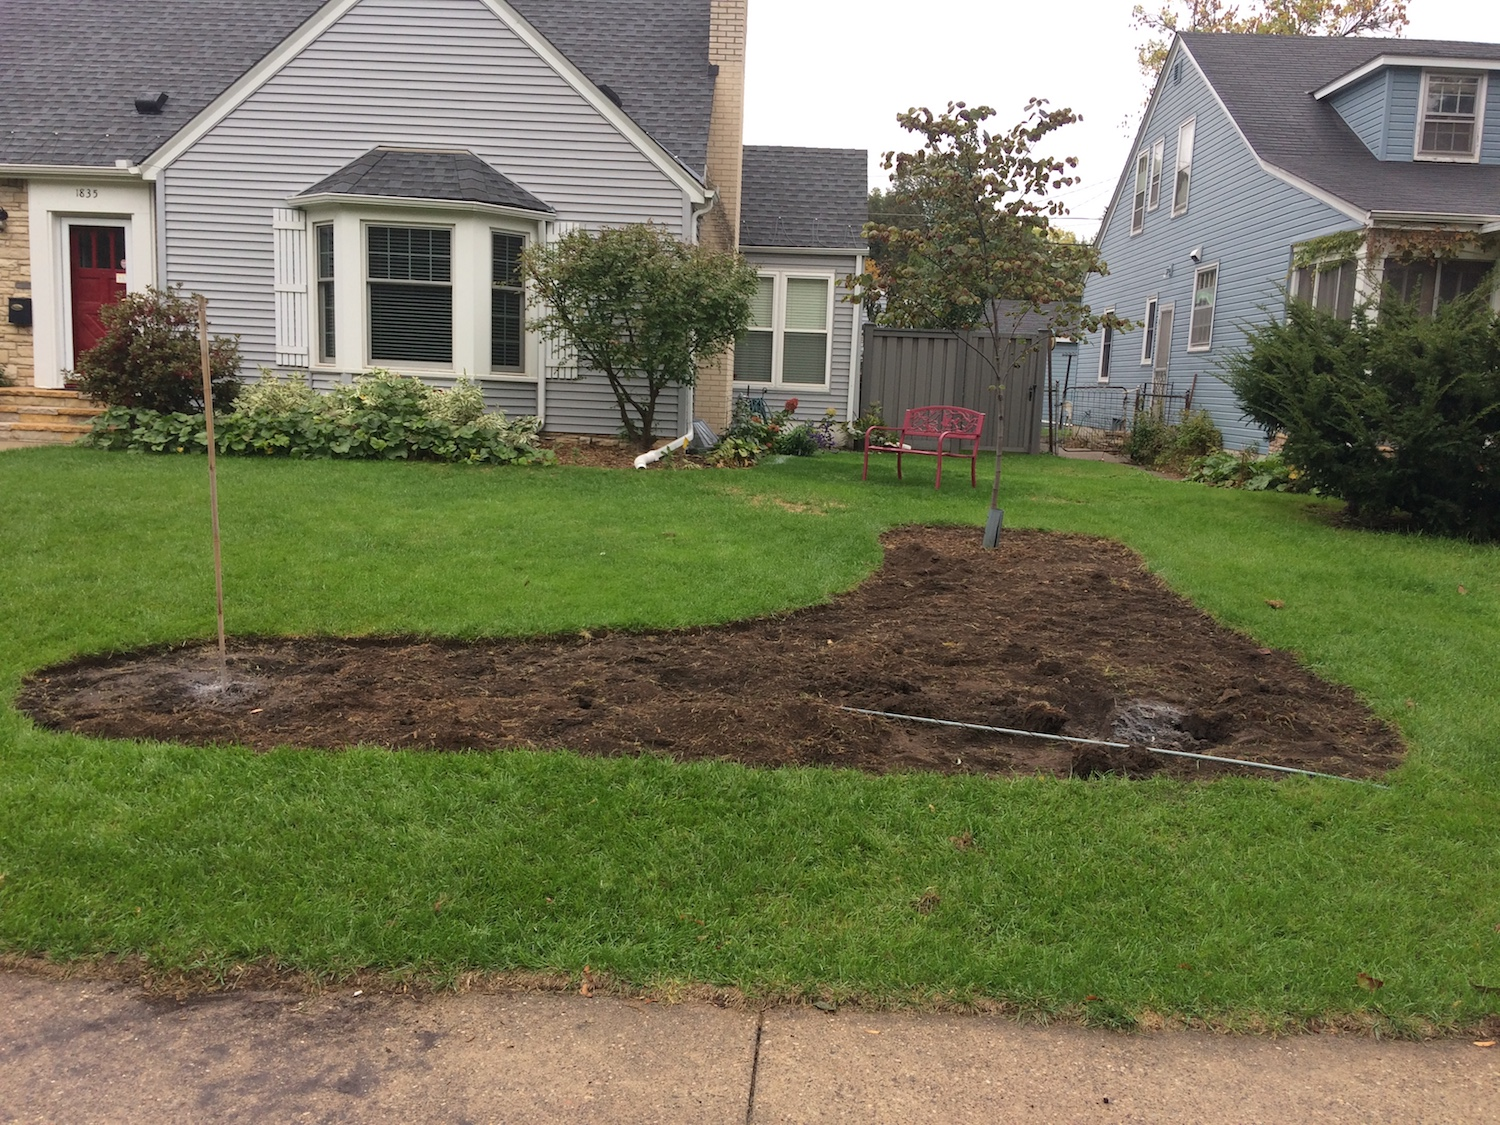 Sod Removed From Garden Bed